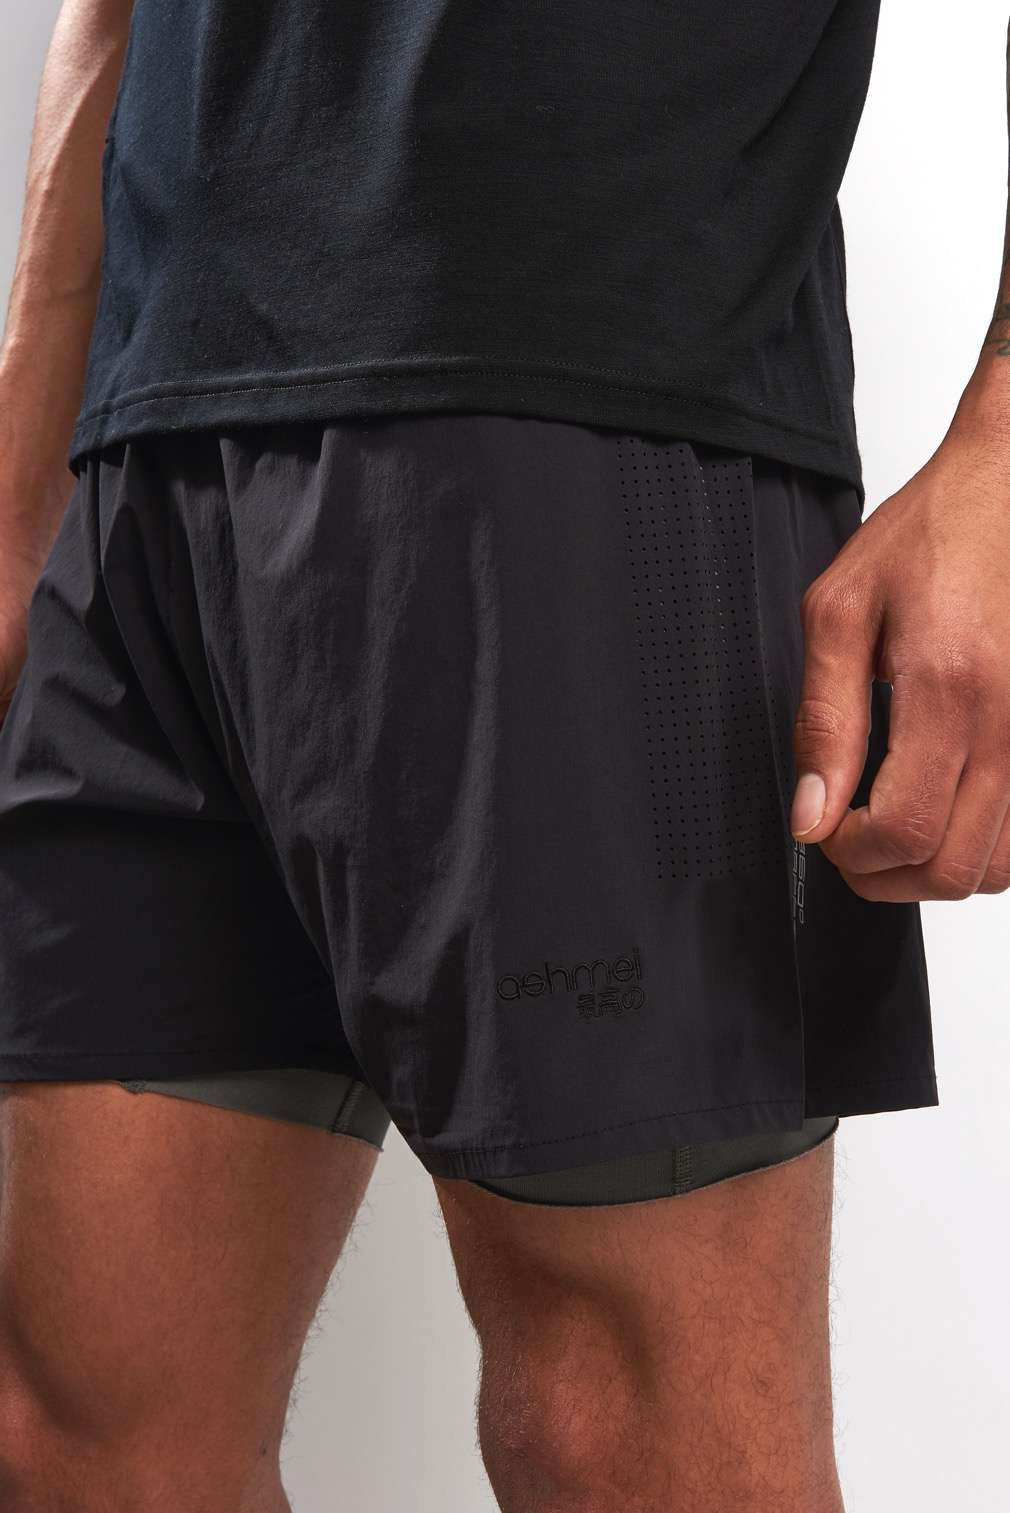 Ashmei 2 in 1 Shorts - Black image 3 - The Sports Edit